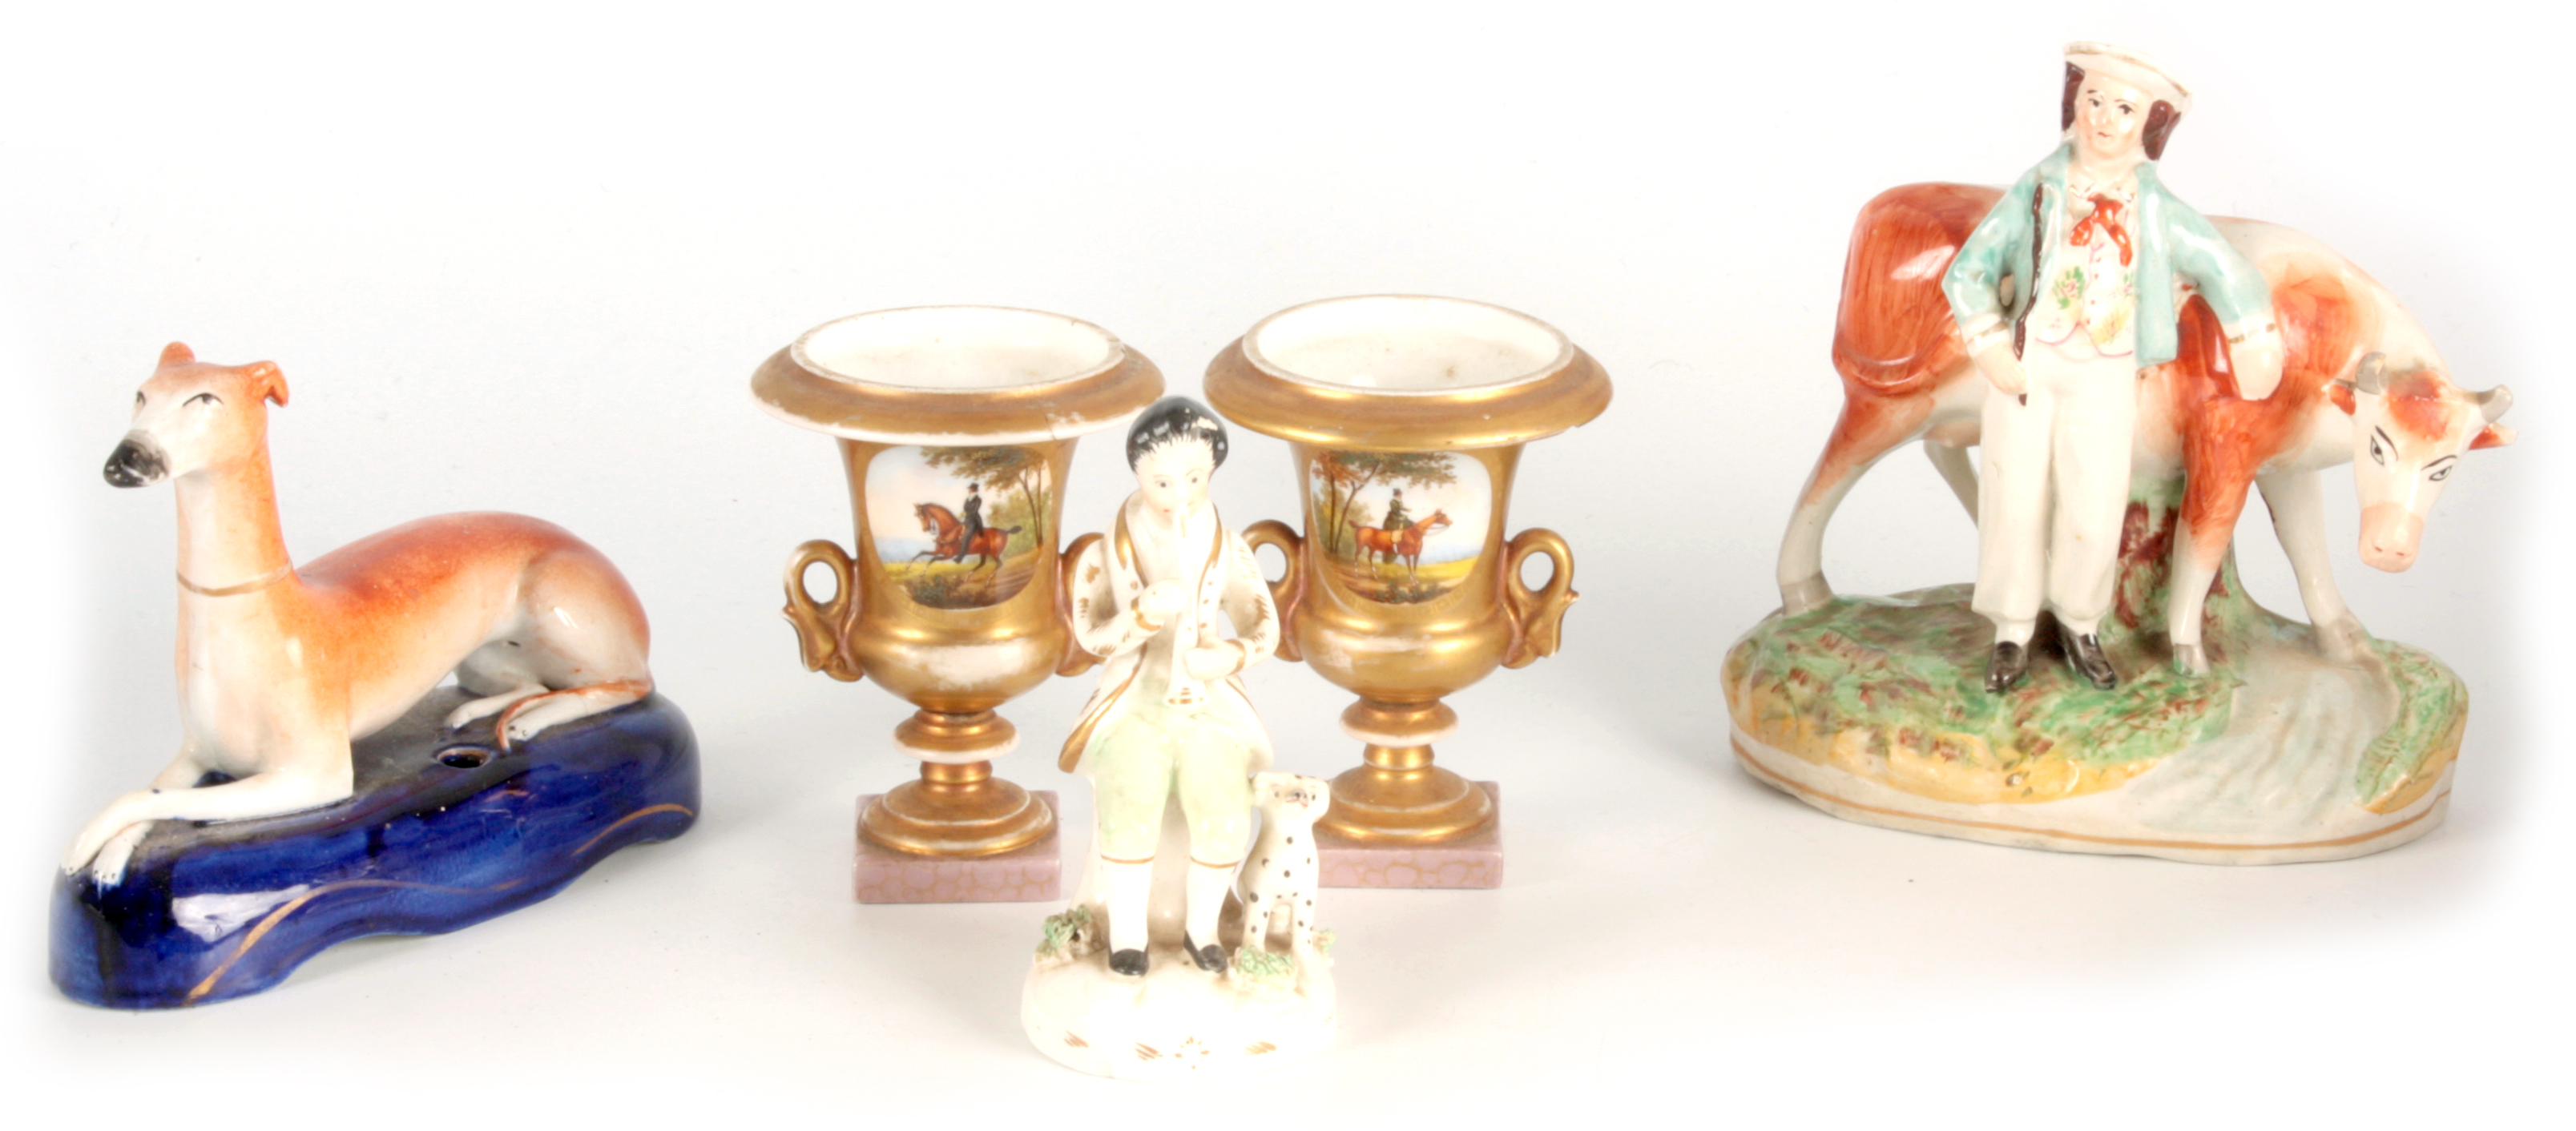 A 19TH CENTURY STAFFORDSHIRE FIGURE depicting a seated piper with dog at foot 12.5cm high A